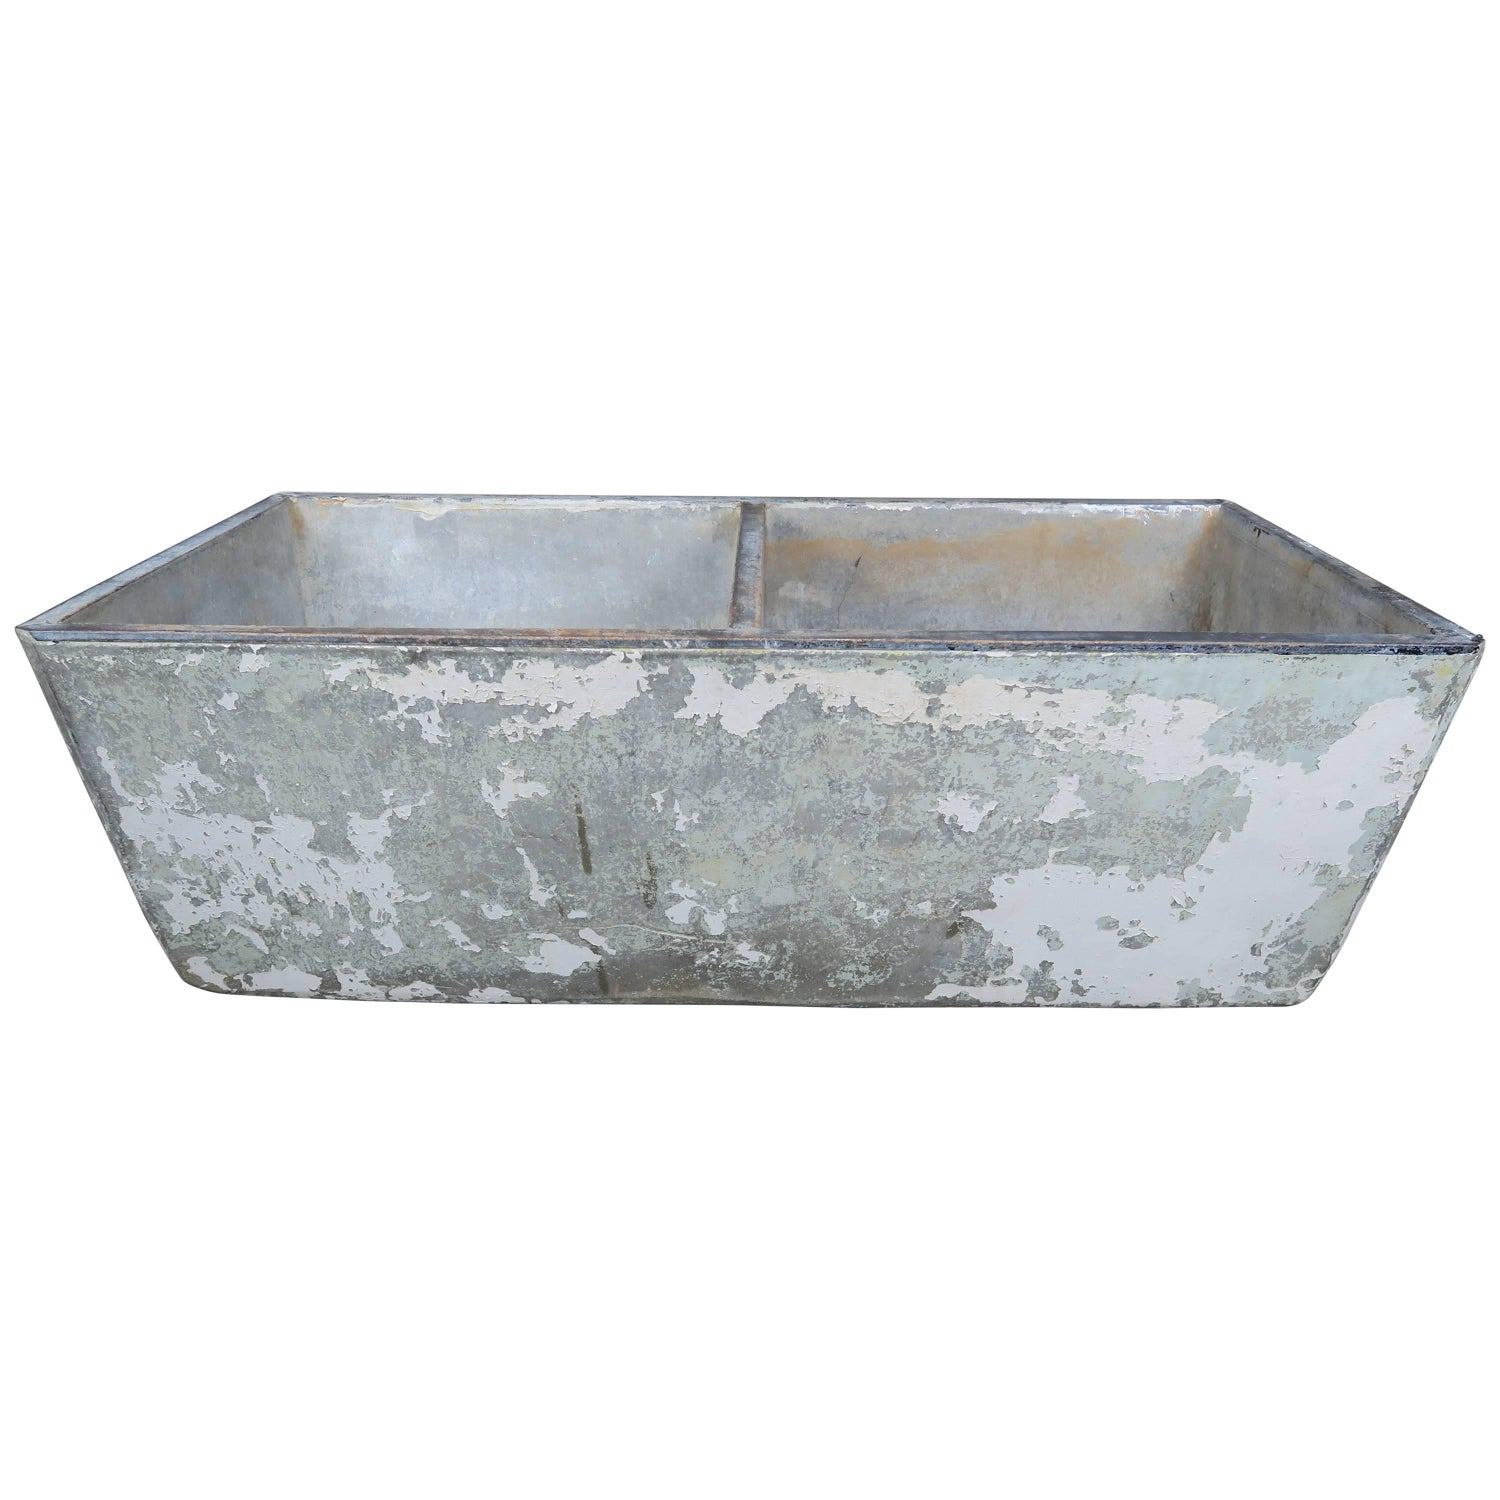 Astounding vintage stone sink photos best inspiration for Antique stone sinks for sale